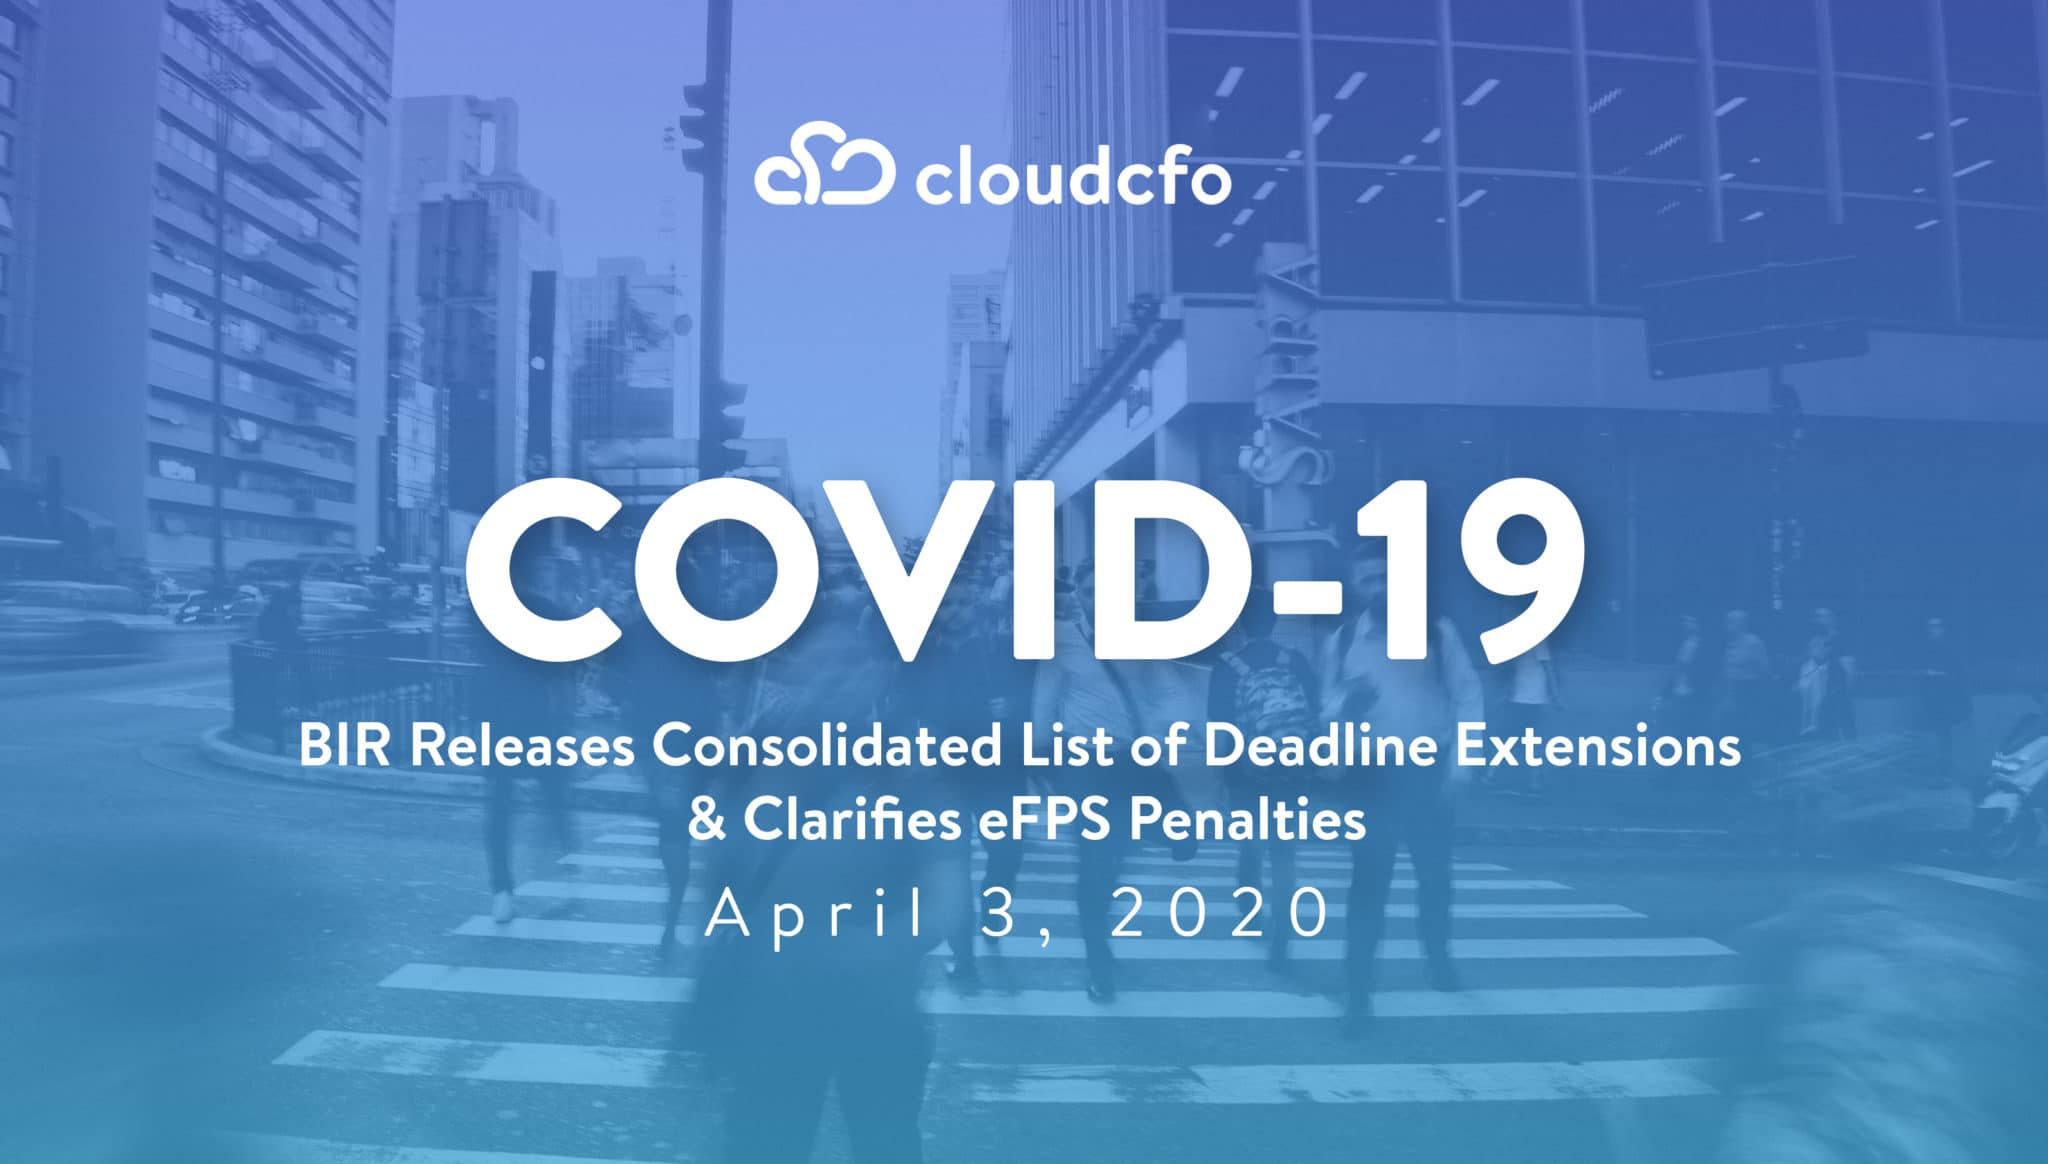 COVID-19: BIR Releases Consolidated List of Extensions & Clarifies eFPS Penalties – 3 April 2020